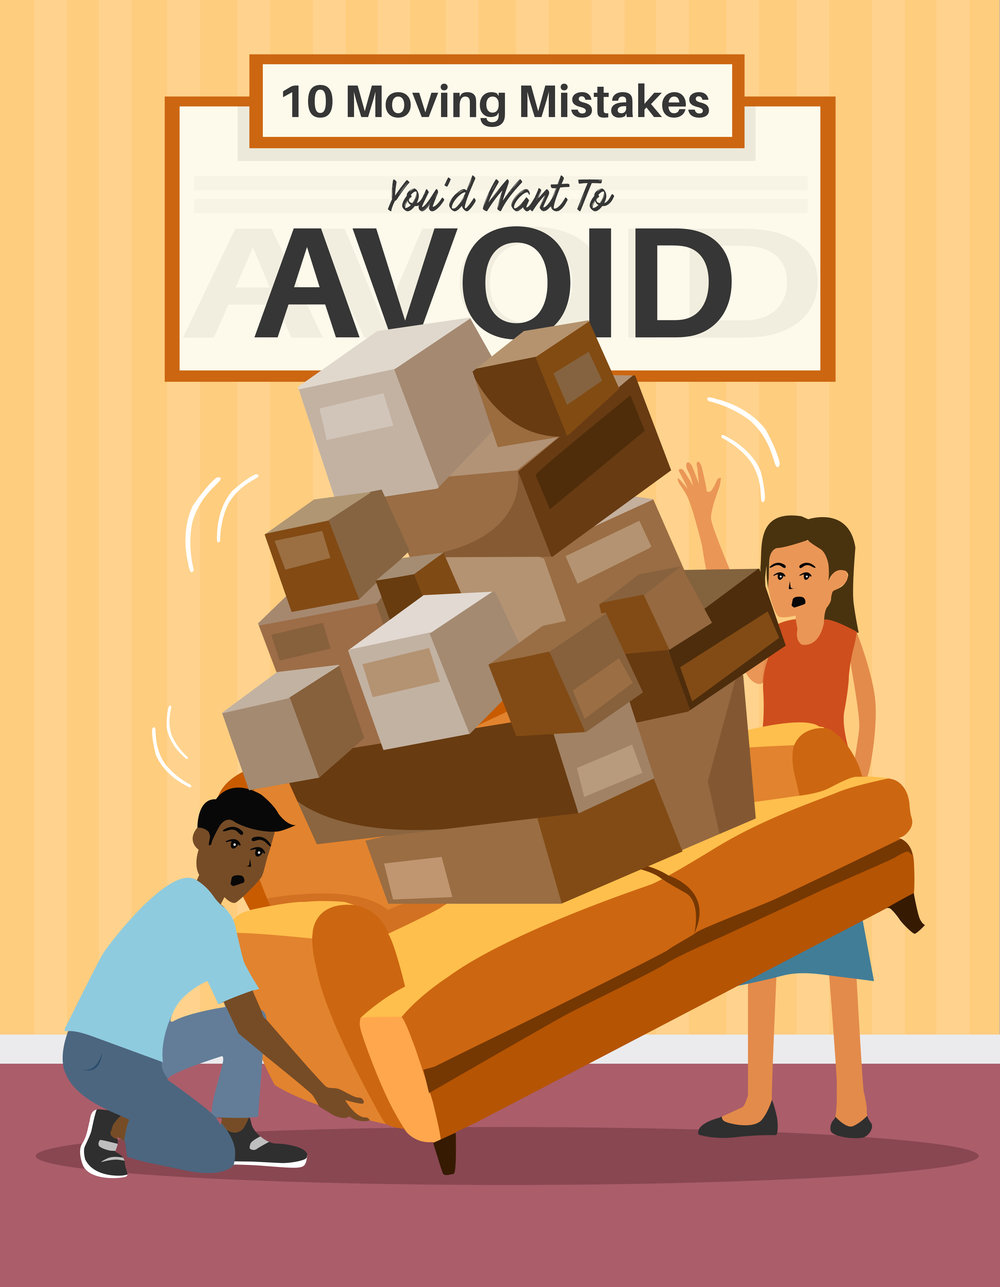 10 Moving Mistakes You'd Want To Avoid